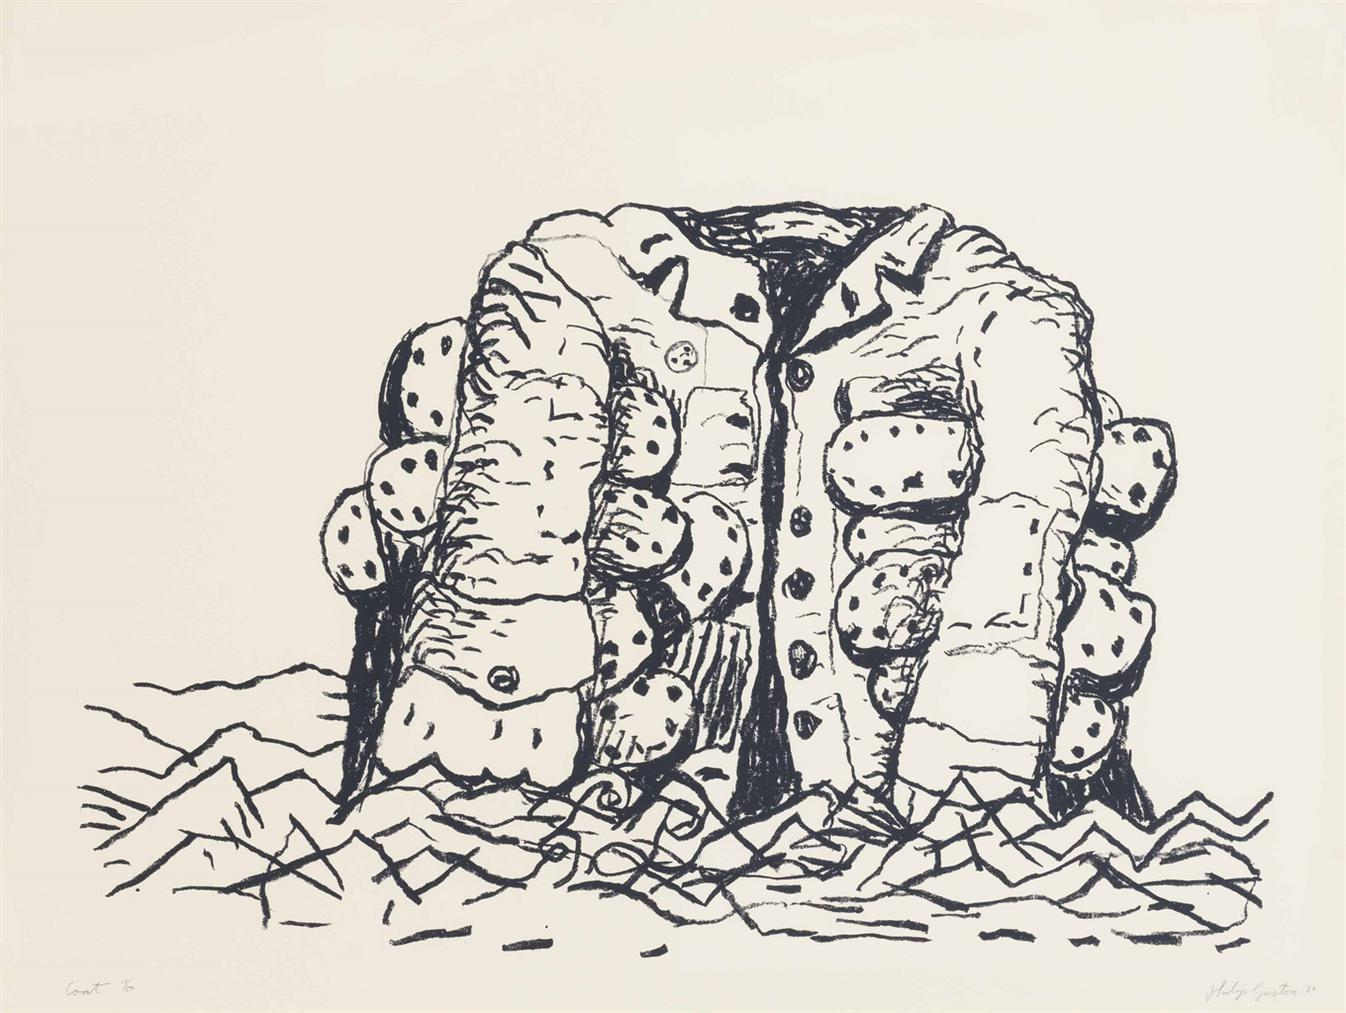 Philip Guston-Coat-1980